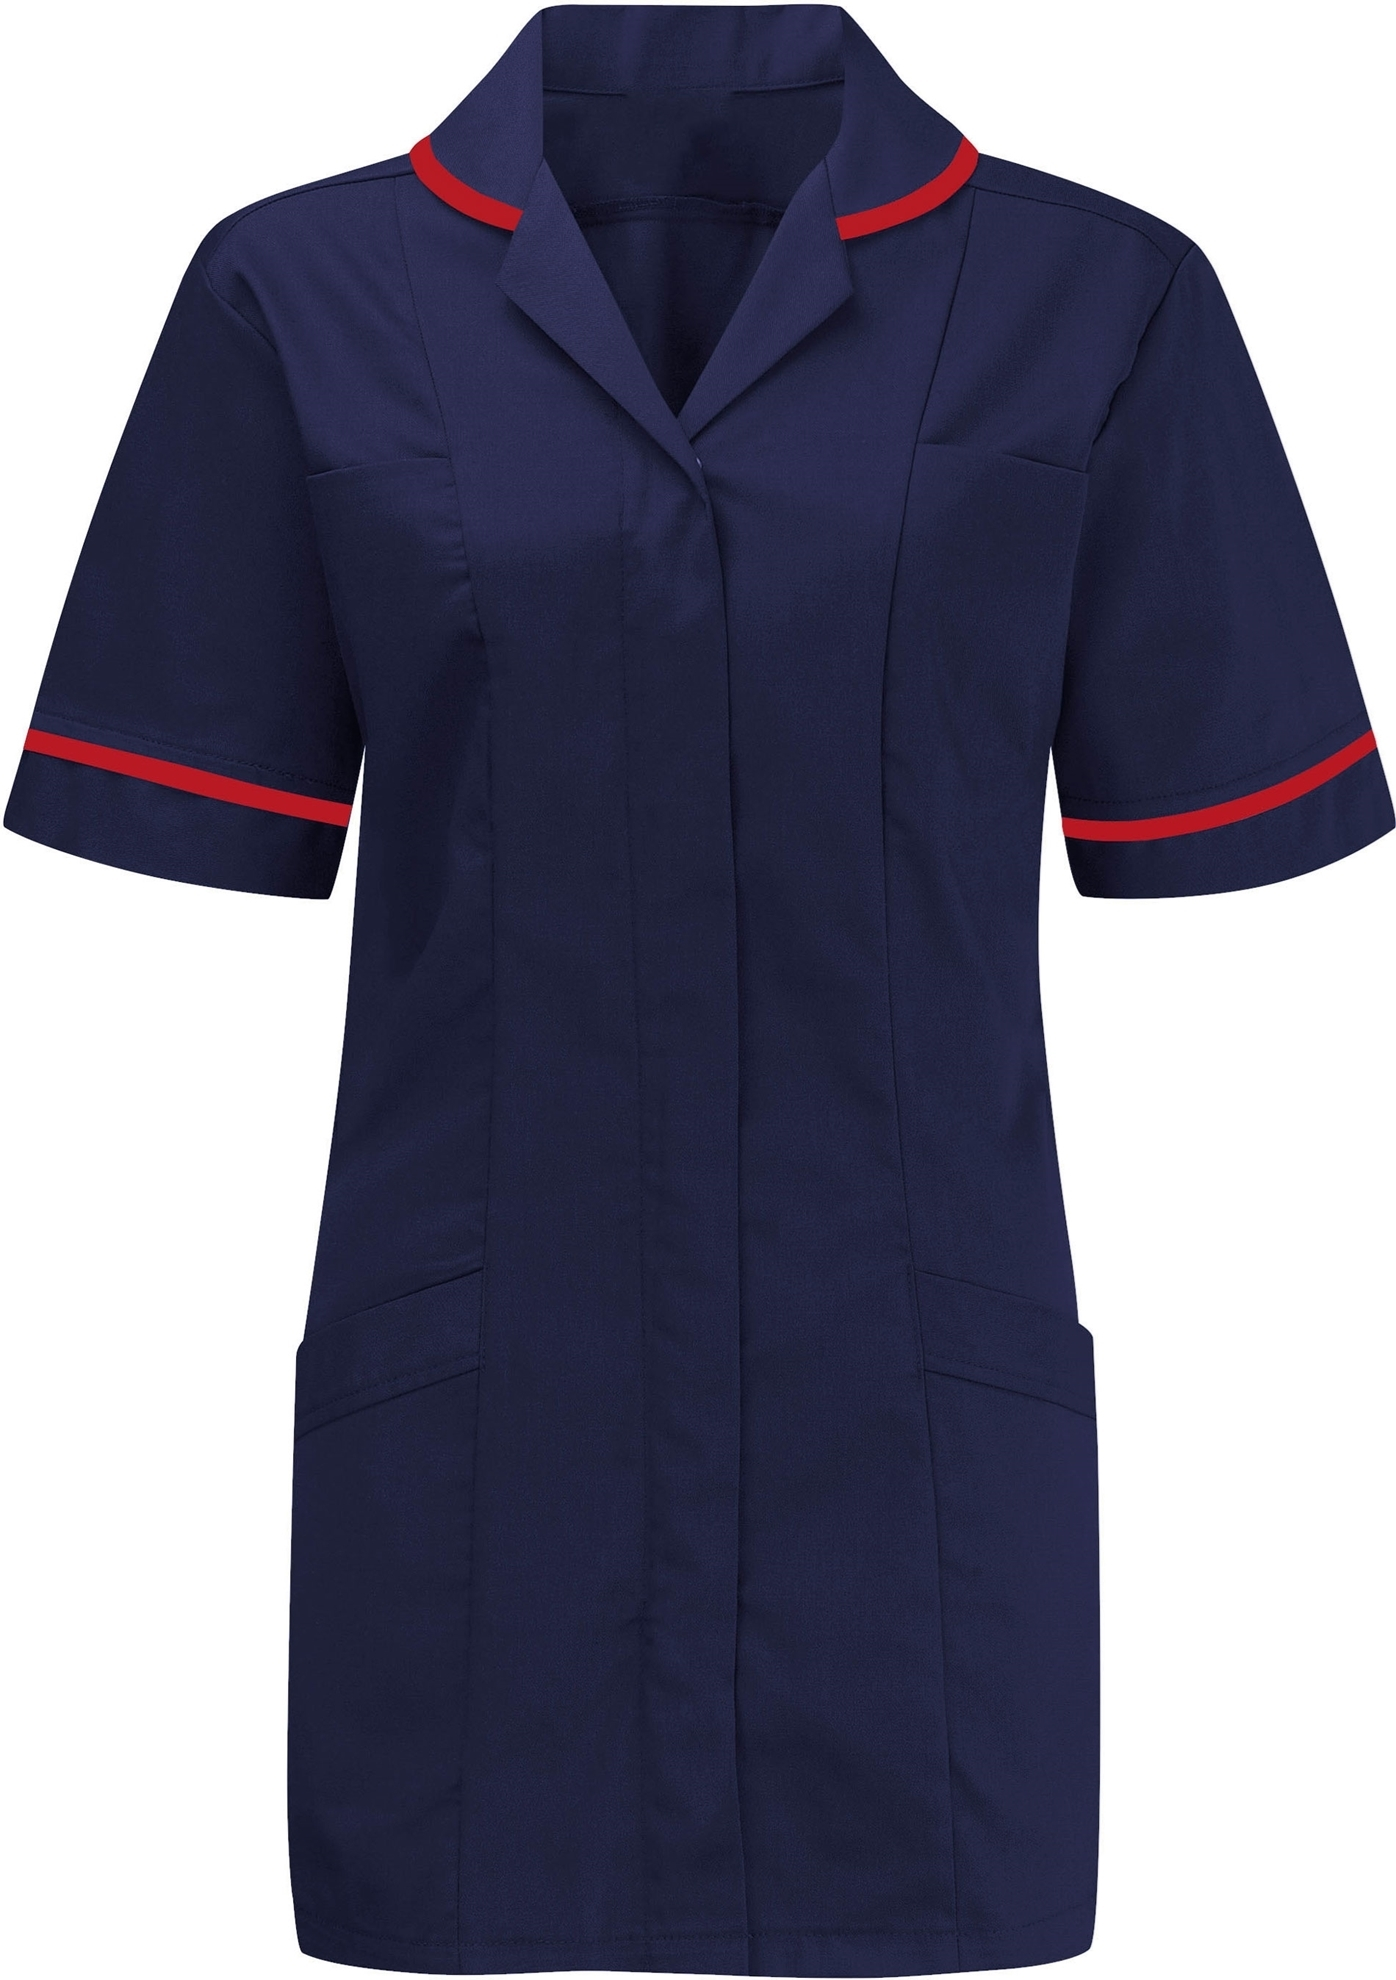 Picture of Advantage Tunic - Navy/Red